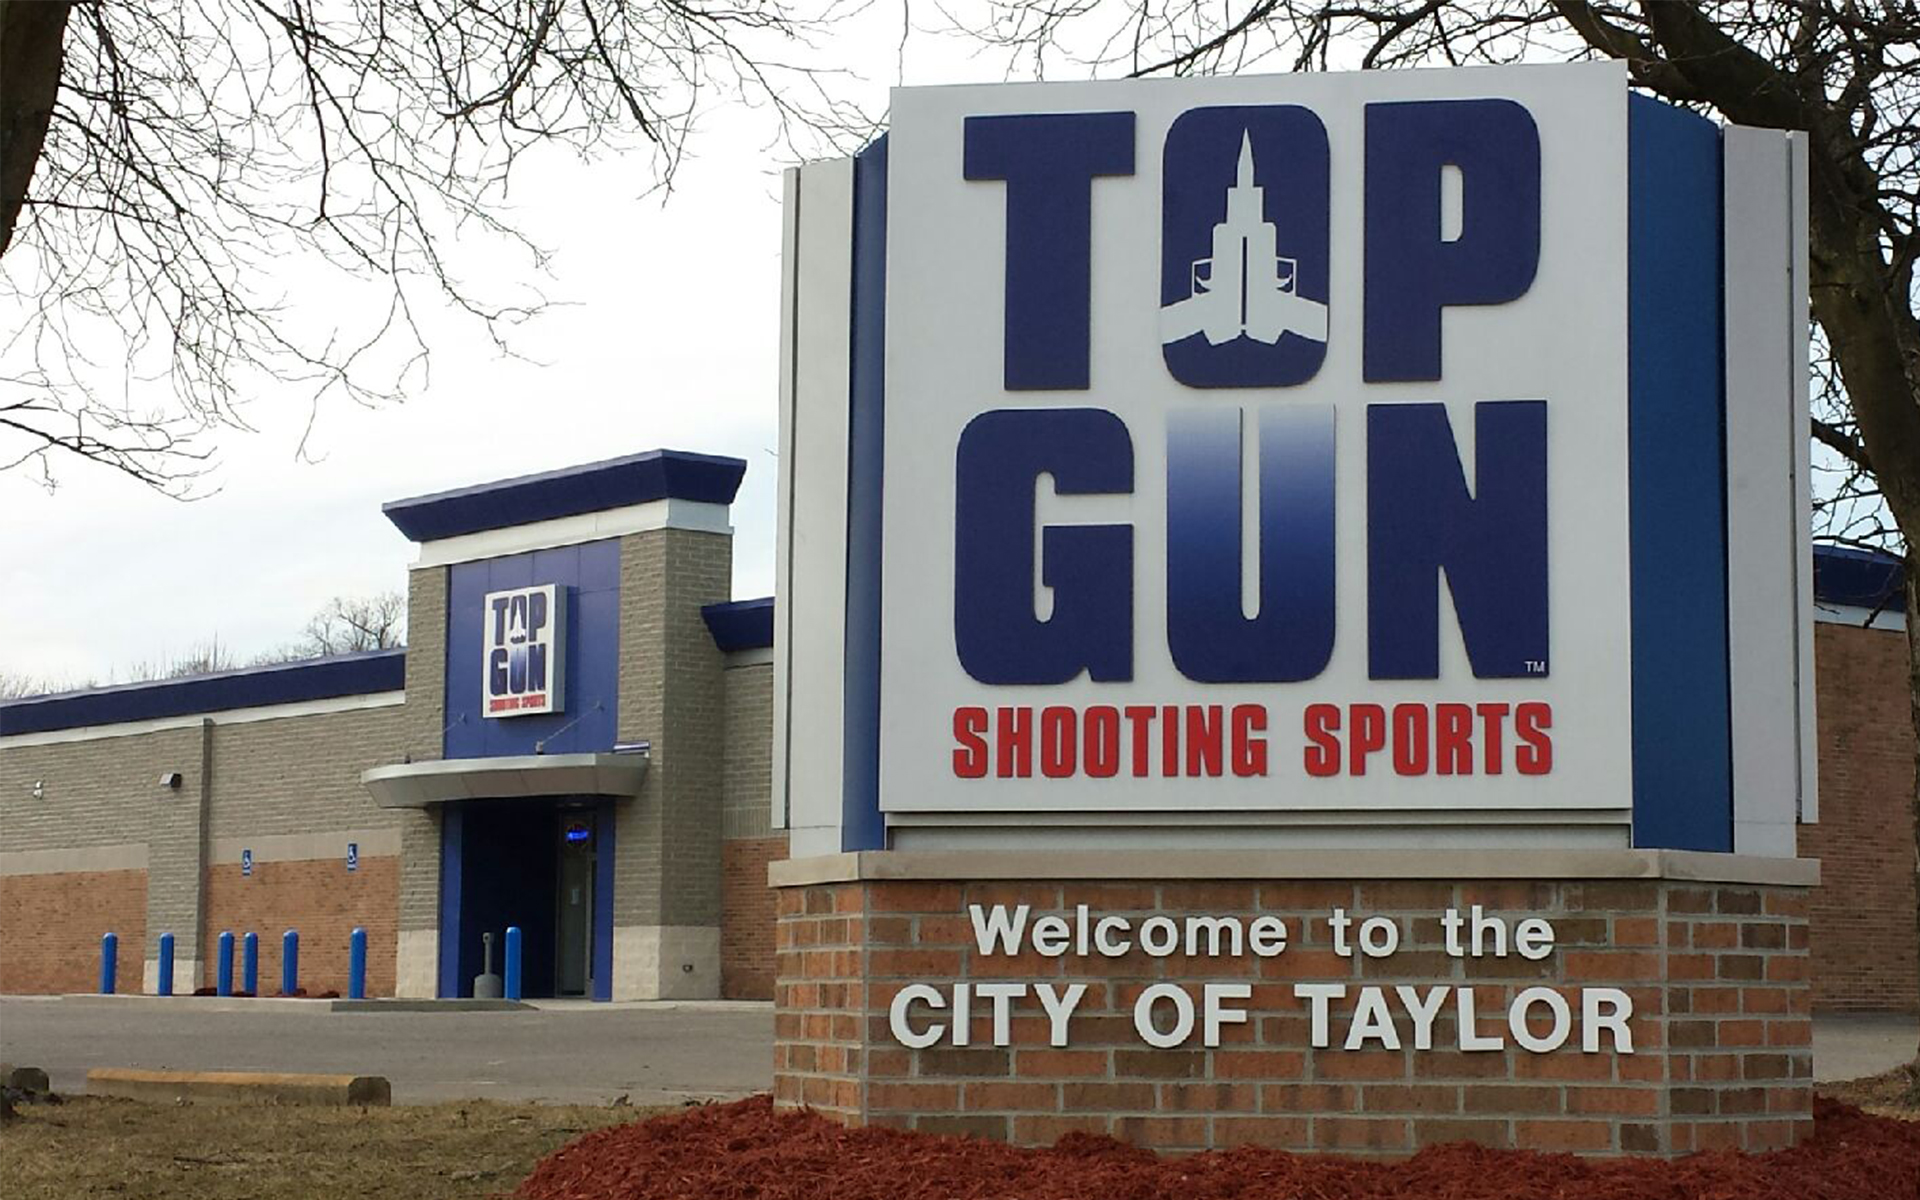 Top Gun Shooting Sports located in Taylor Michigan